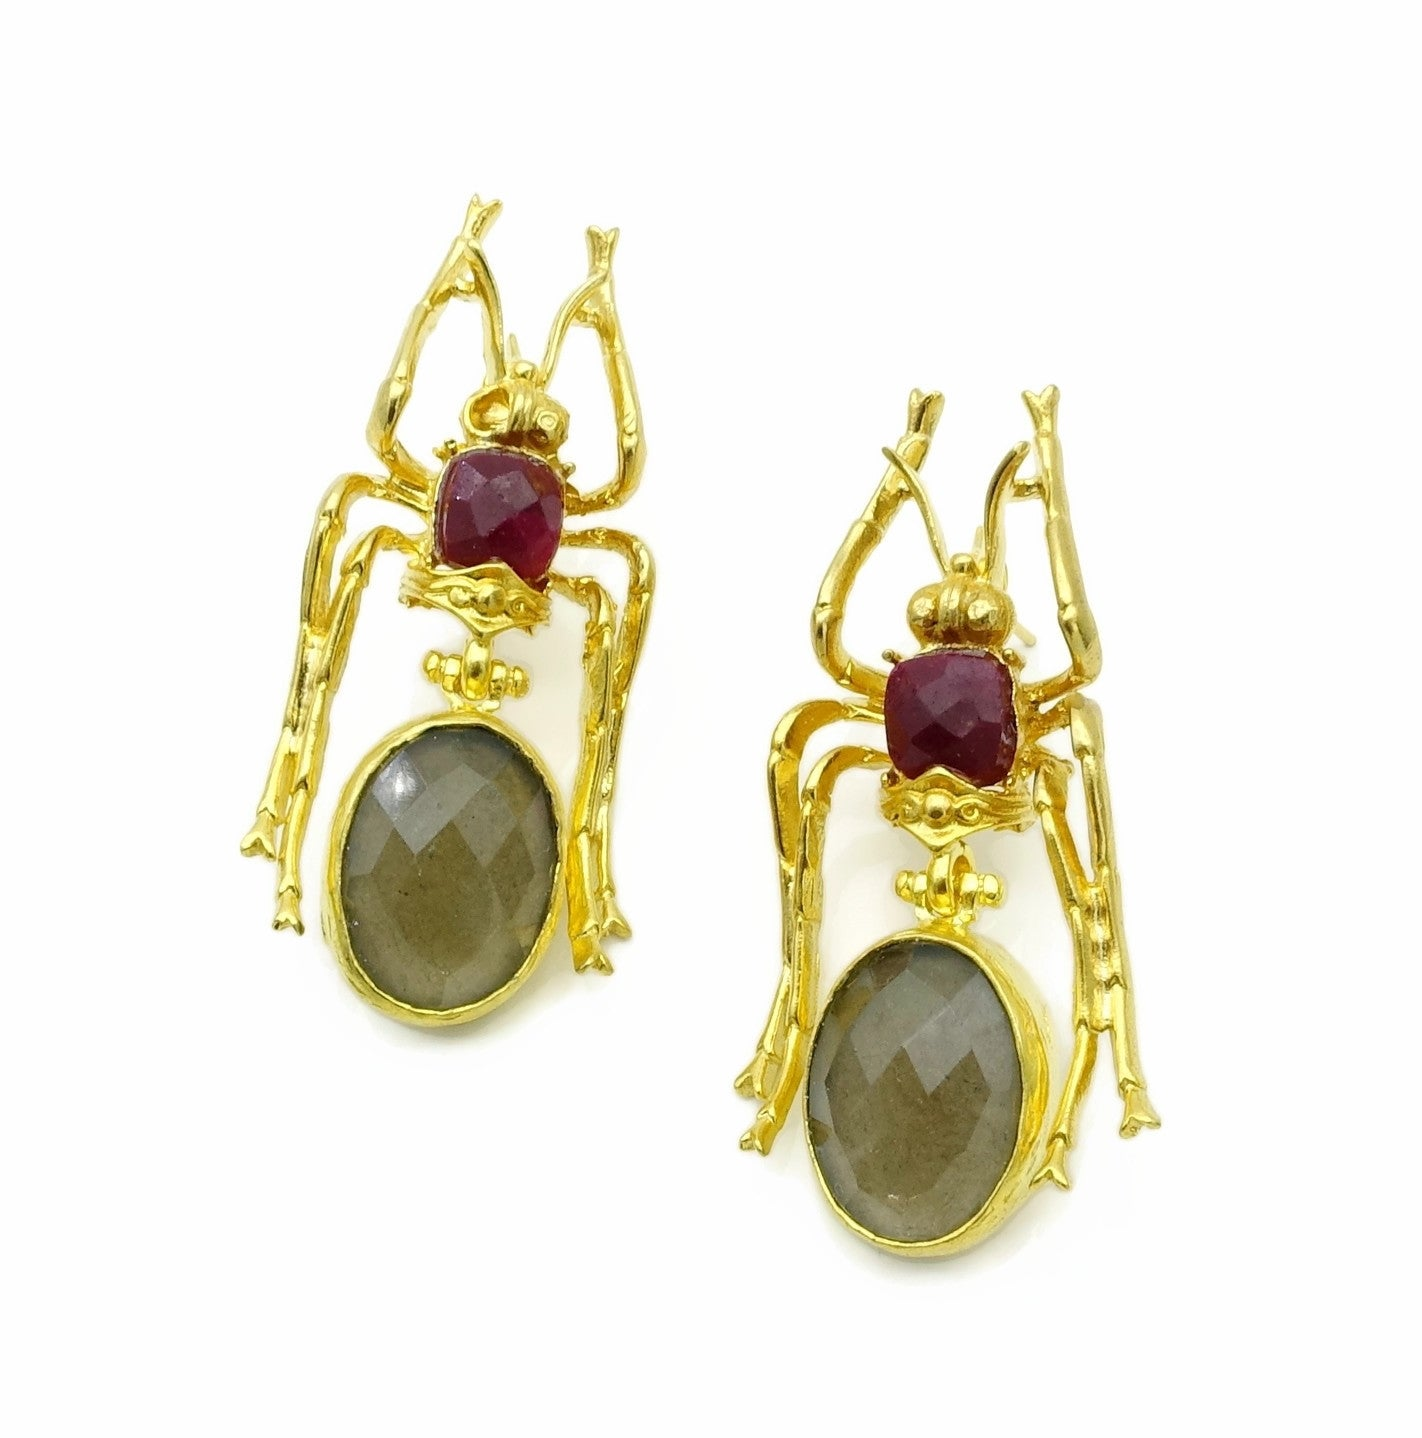 Aylas Smoky quartz Chalcedony earrings - 21ct Gold plated semi precious gemstone